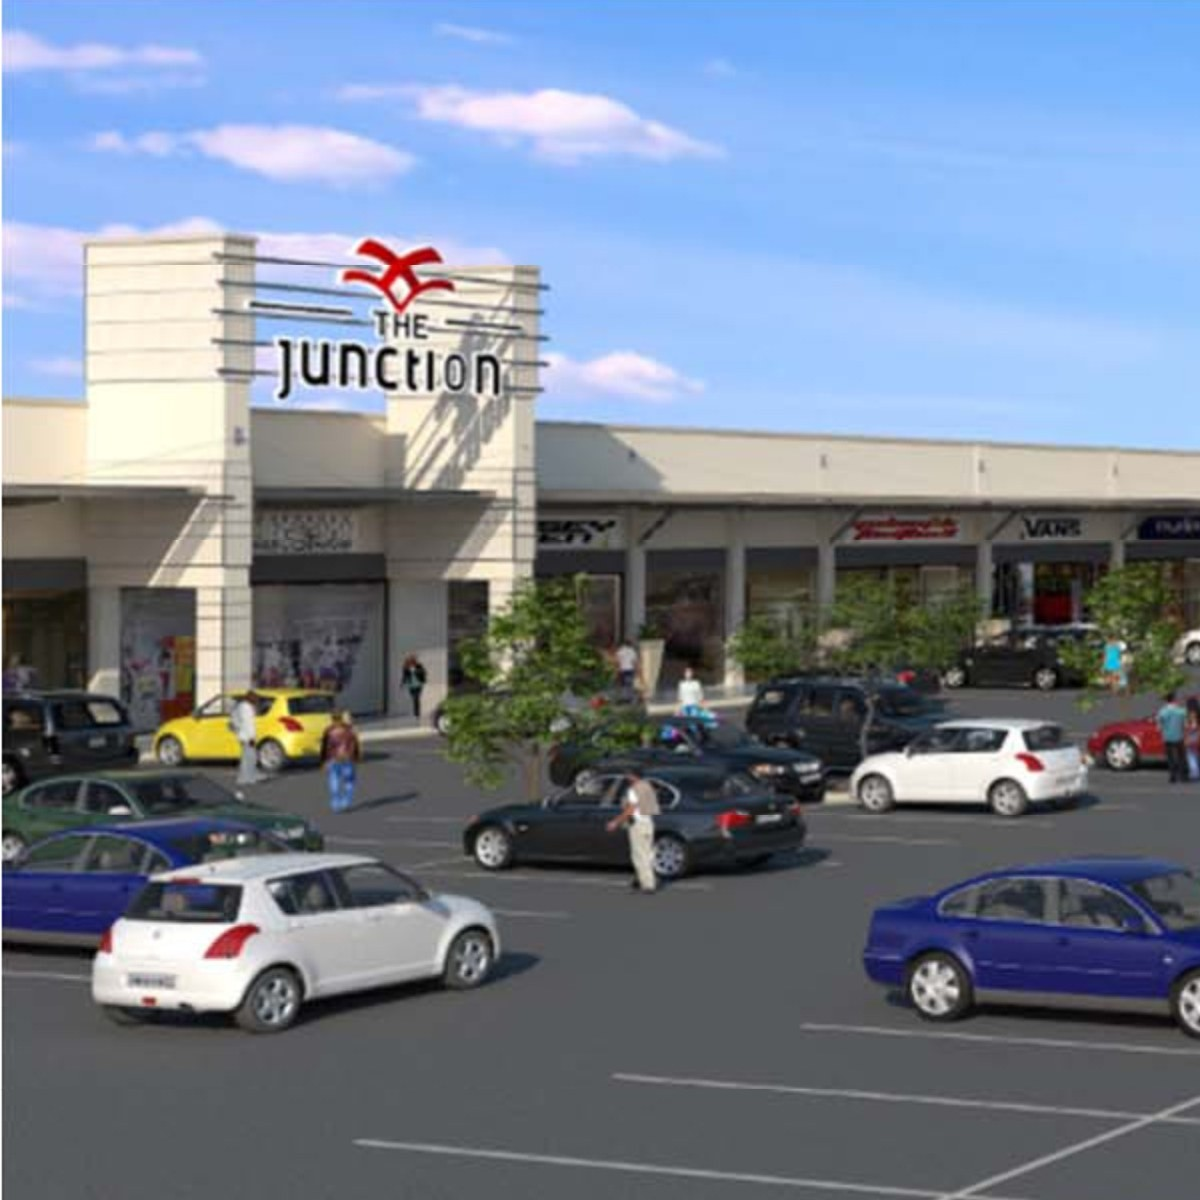 TheJunction_01